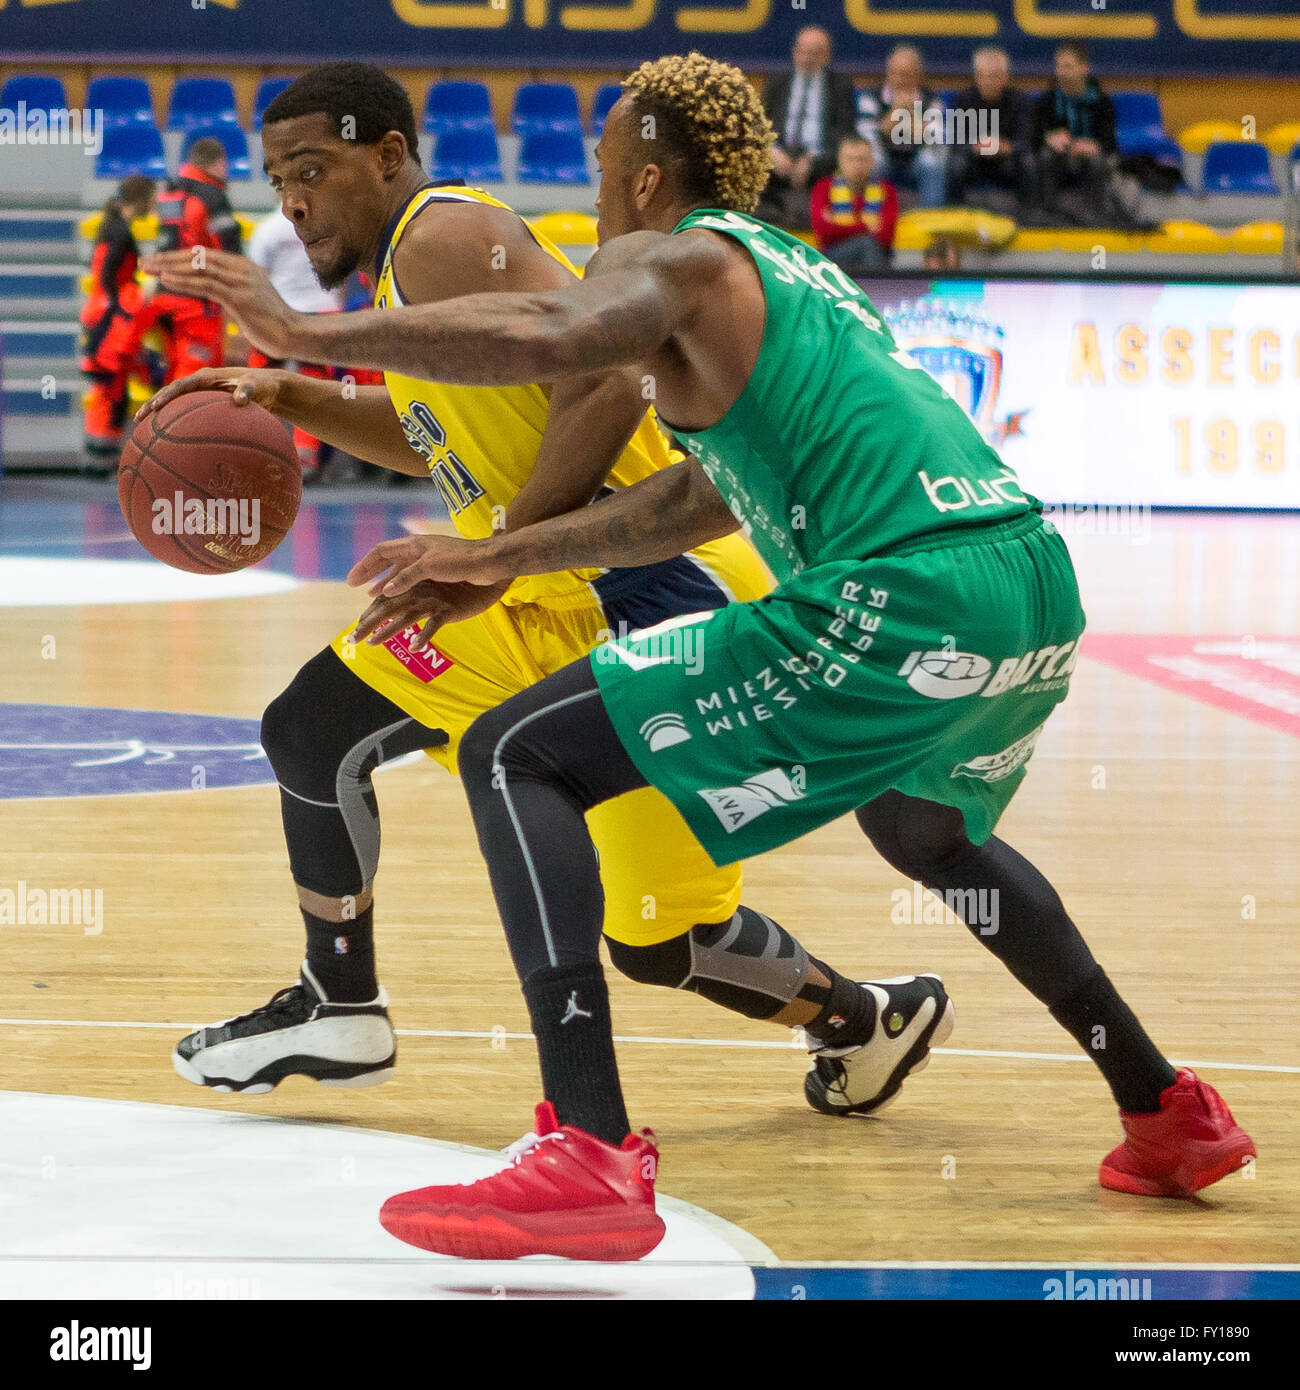 Gdynia Arena, Gdynia, Poland, 19th April, 2016. Basketball Tauron League,  Anthony Hickey, Dee Bost in action during - Stock Image